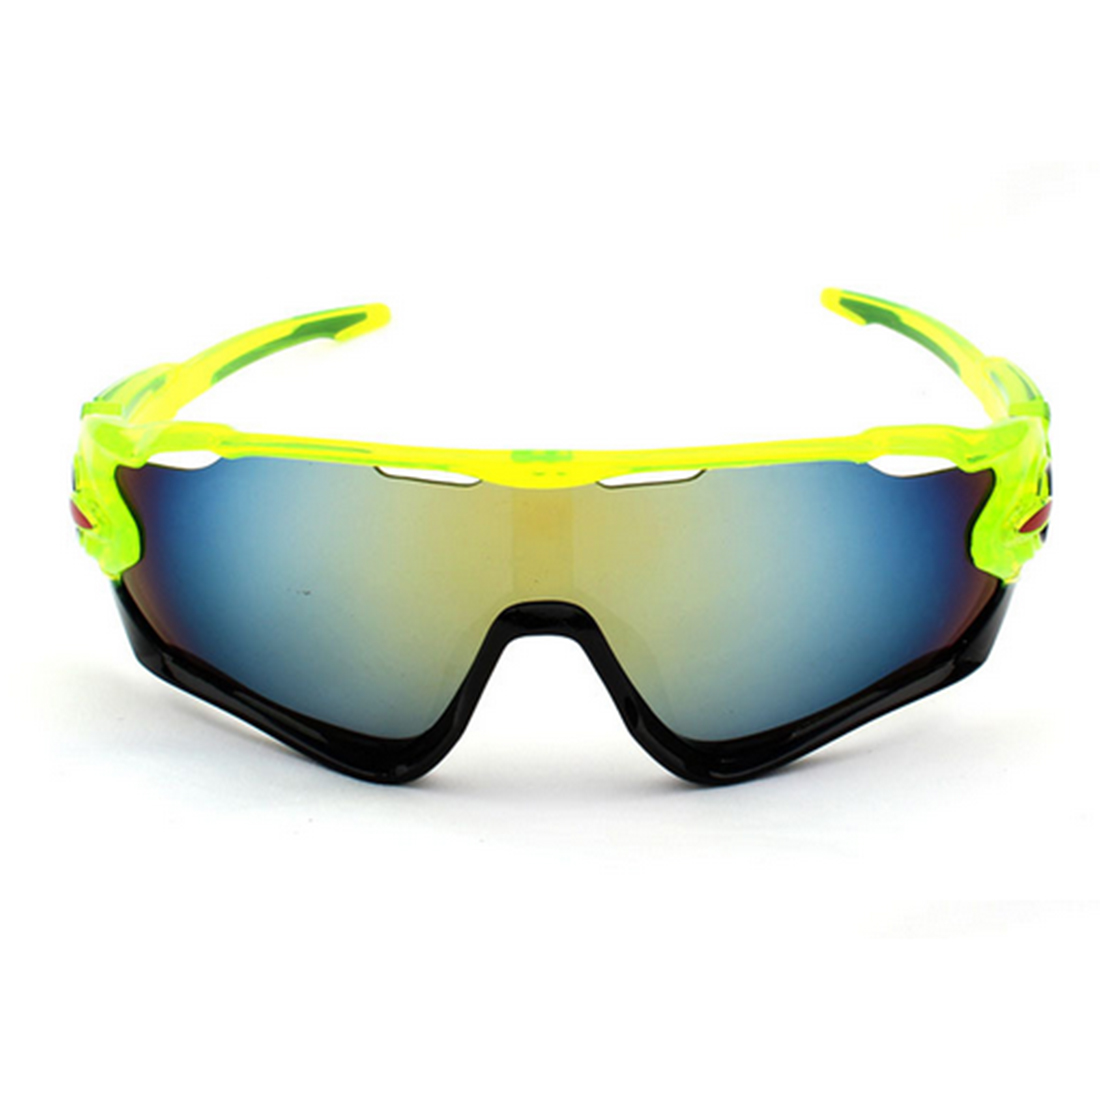 Night Vision Fishing Eyewear Outdoor Activities Goggle Skiing Cycling Wind Goggle Fluorescent Green Frame Black Edge Gold Film